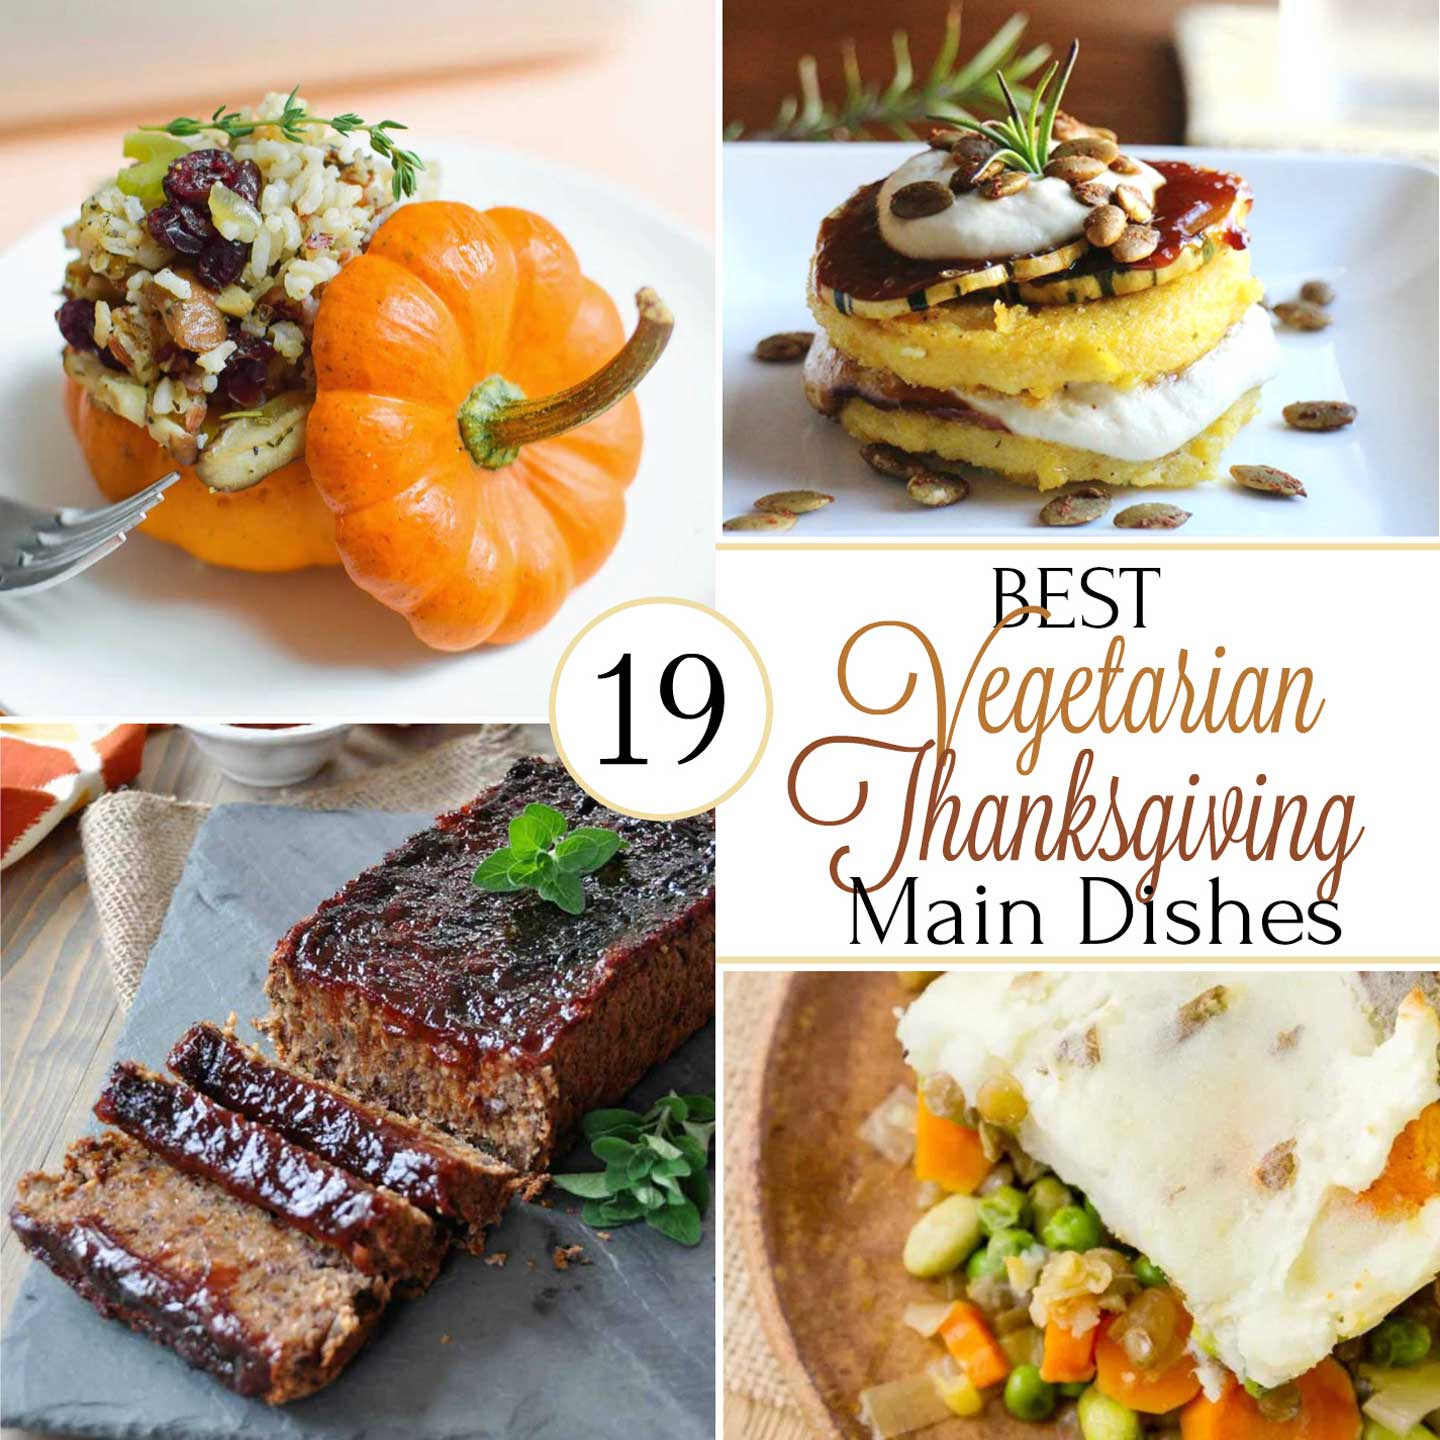 Vegetarian Main Dishes Thanksgiving  19 Best Healthy Thanksgiving Ve arian Main Dishes Two